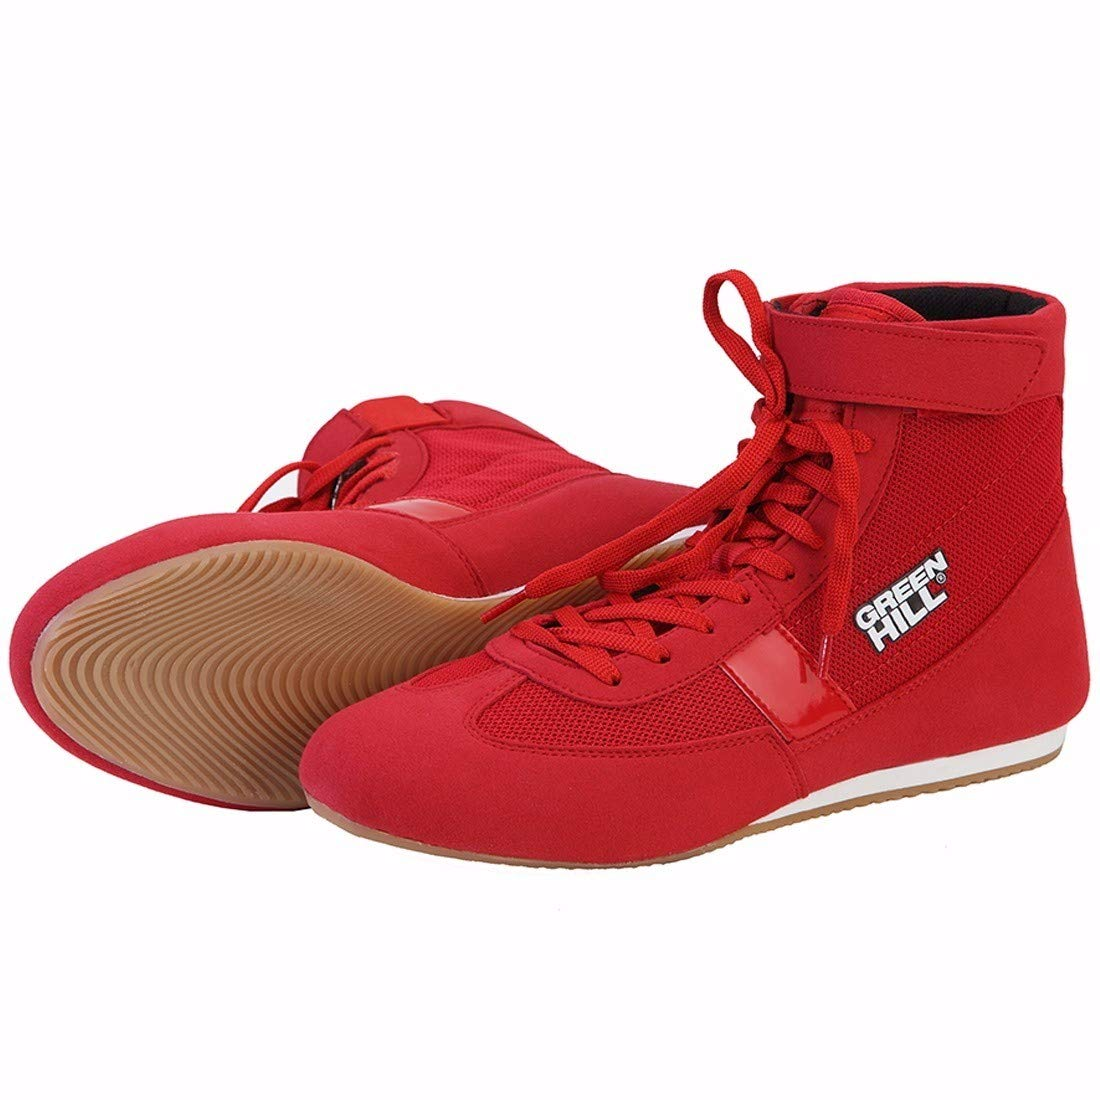 Green Hill Boxschuhe Boxing Shoes,Low Top Boxing Boots Boxen